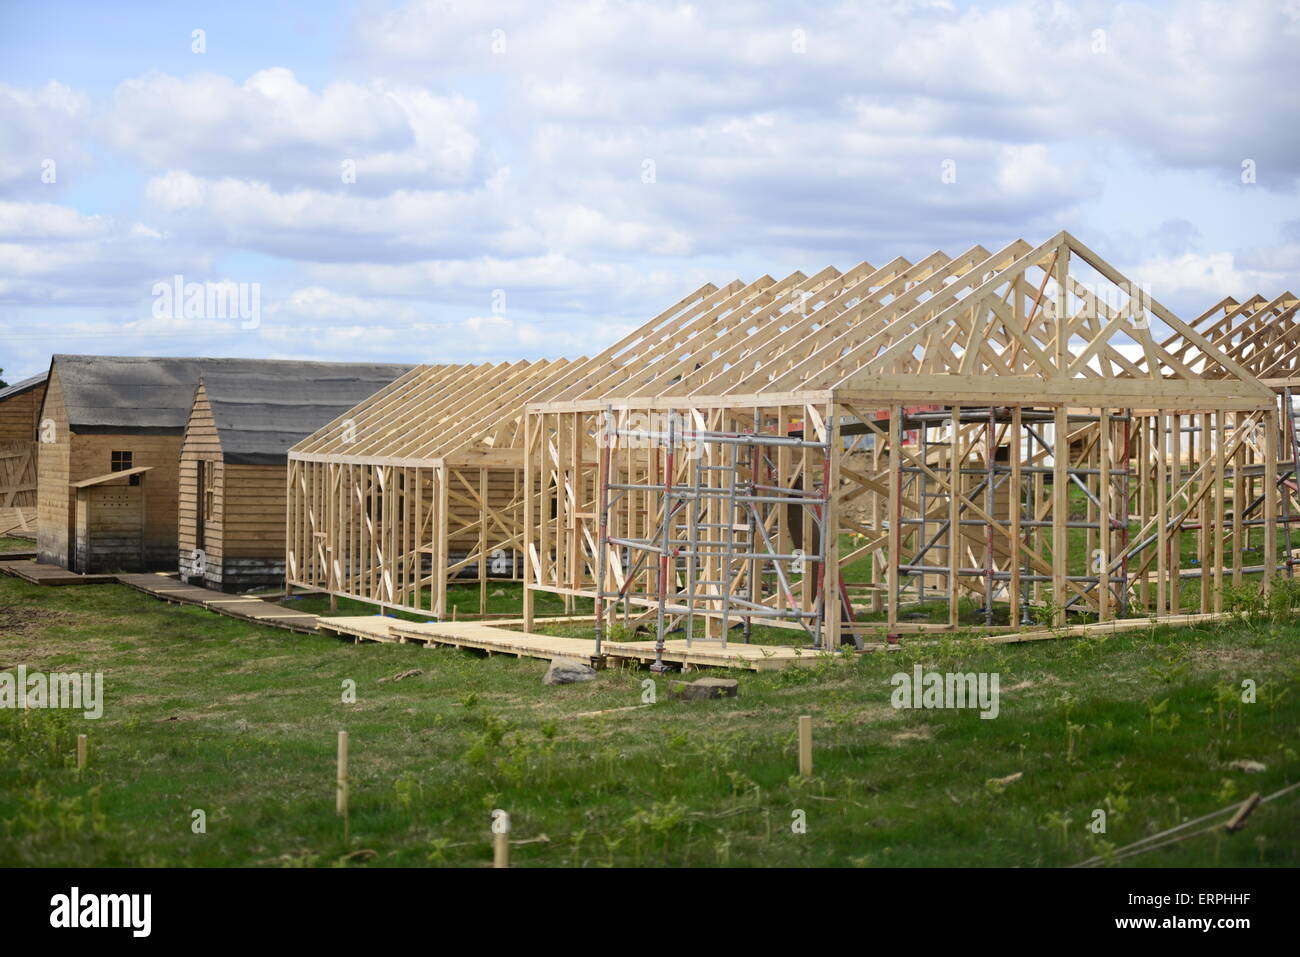 The film set which is currently being built for ITV drama 'Jericho'. Picture: Scott Bairstow/Alamy - Stock Image